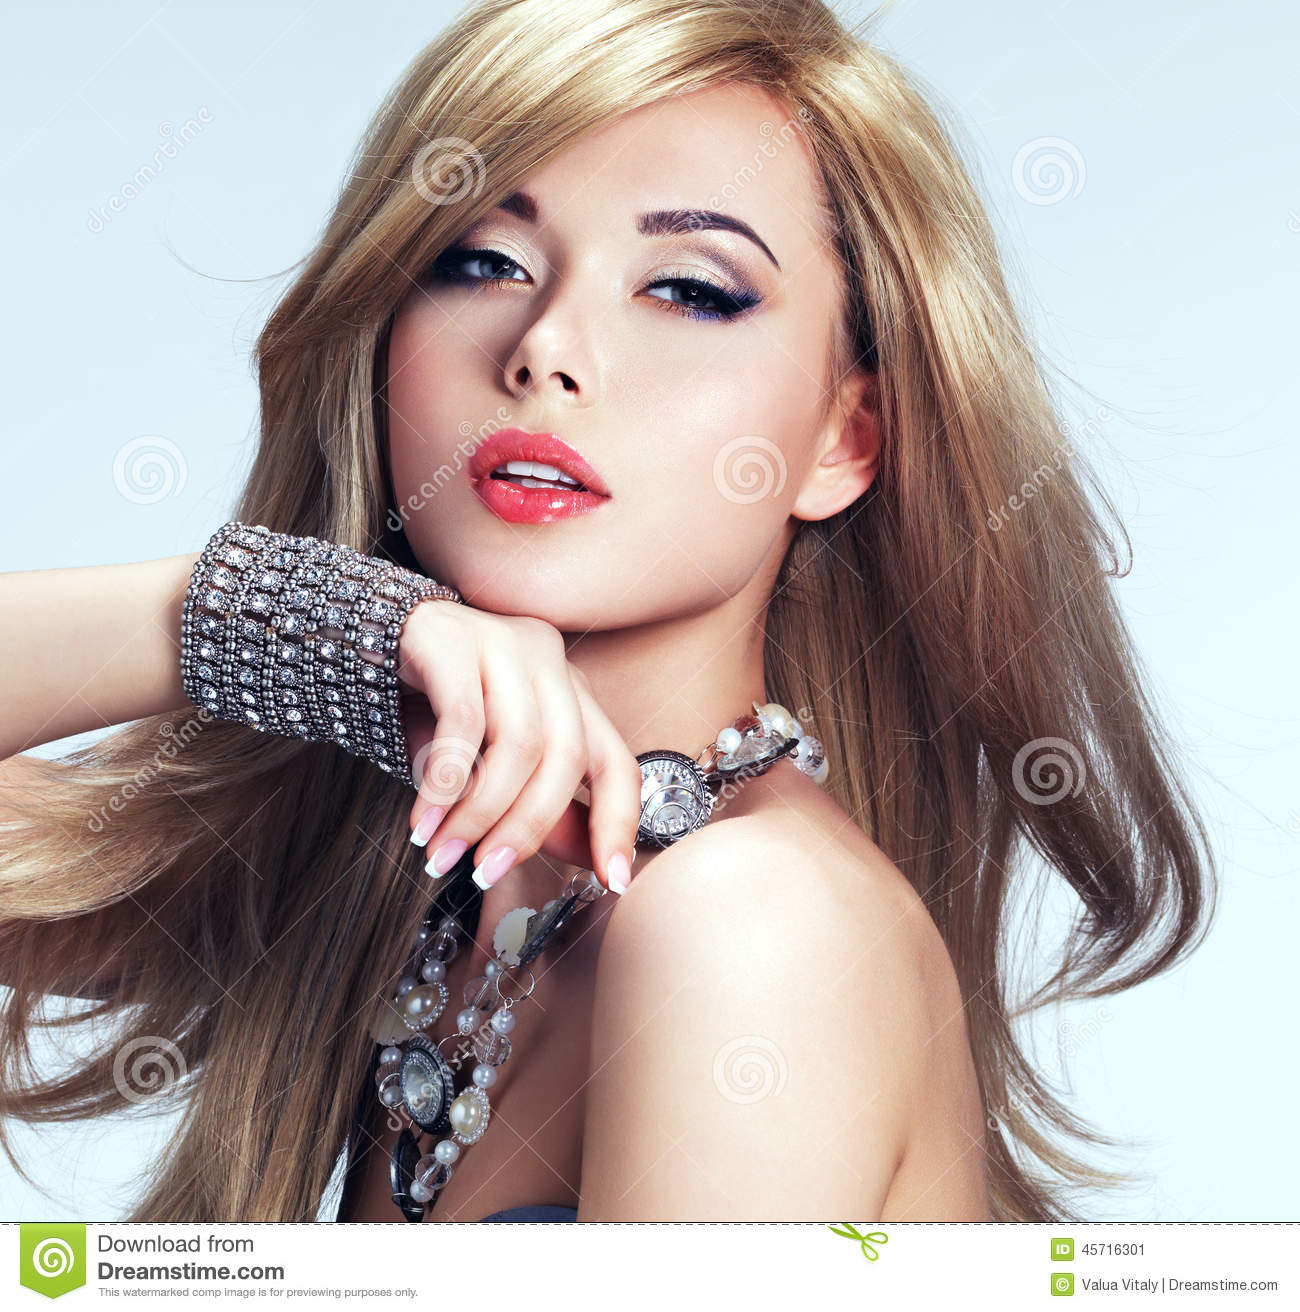 Lipstick Pretty Girl Faces: Portrait Of A Beautiful Fashion Woman With Bright Makeup